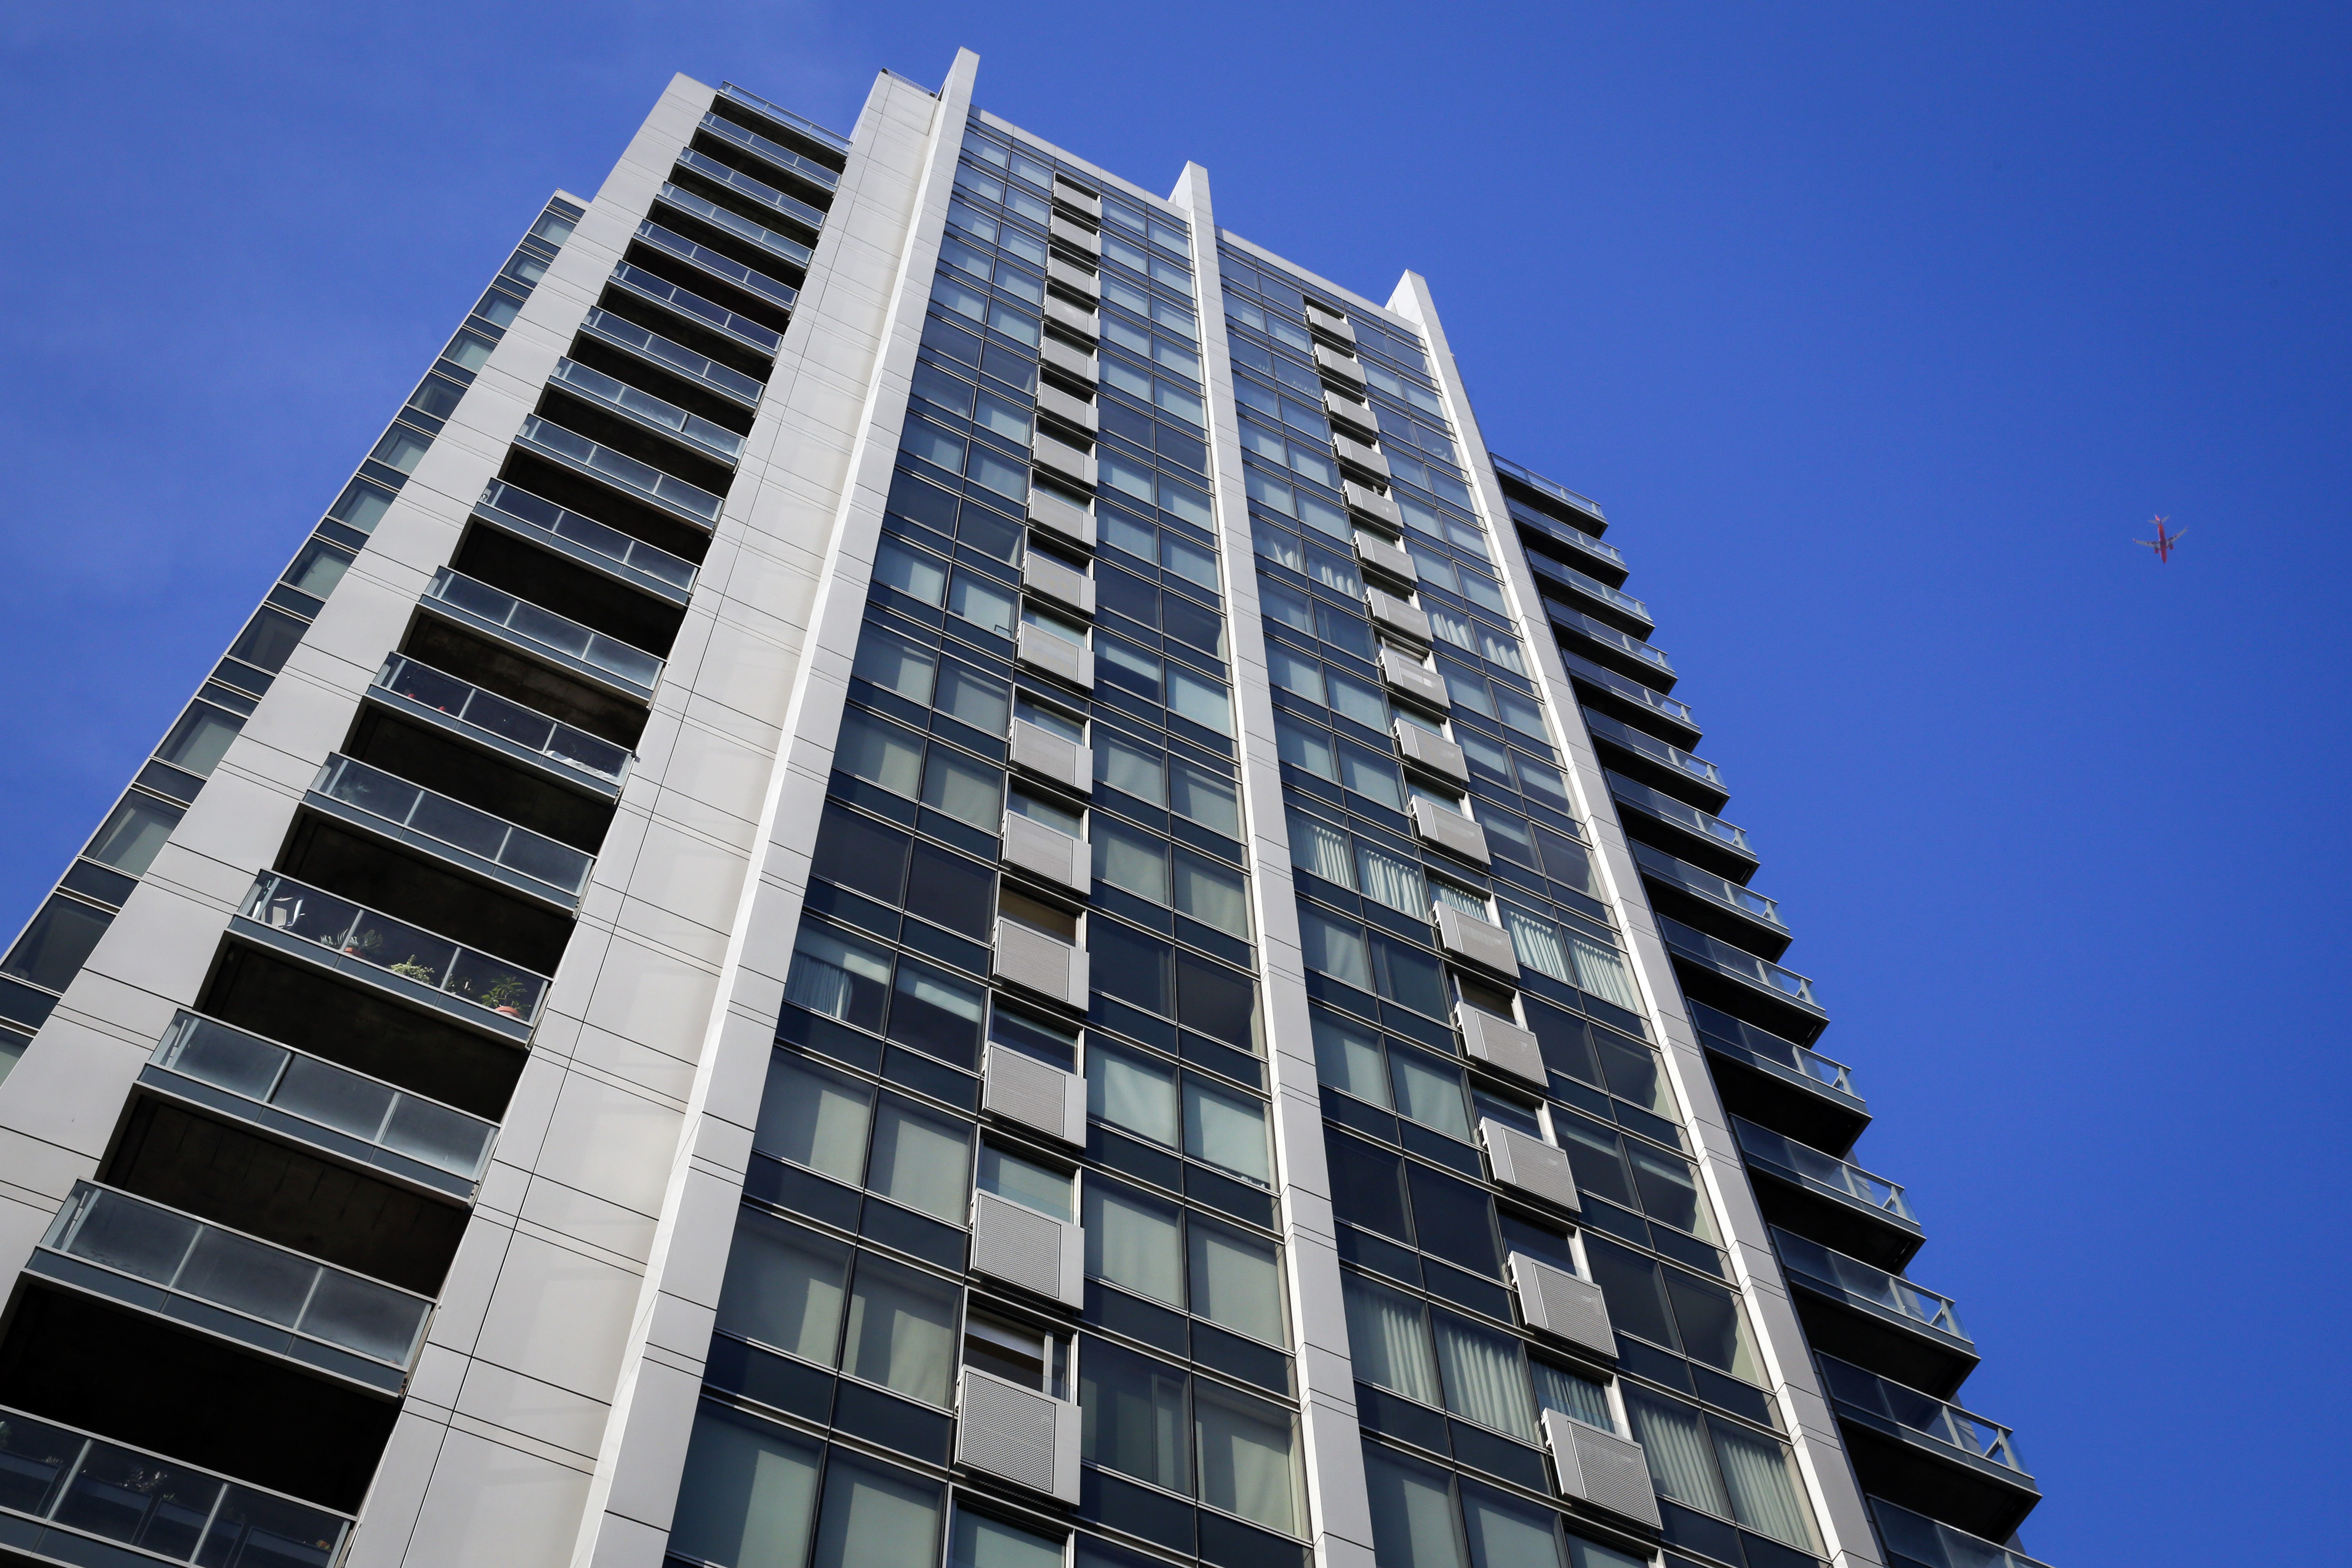 The EVO condominium building stands in downtown Los Angeles on June 23, 2014.